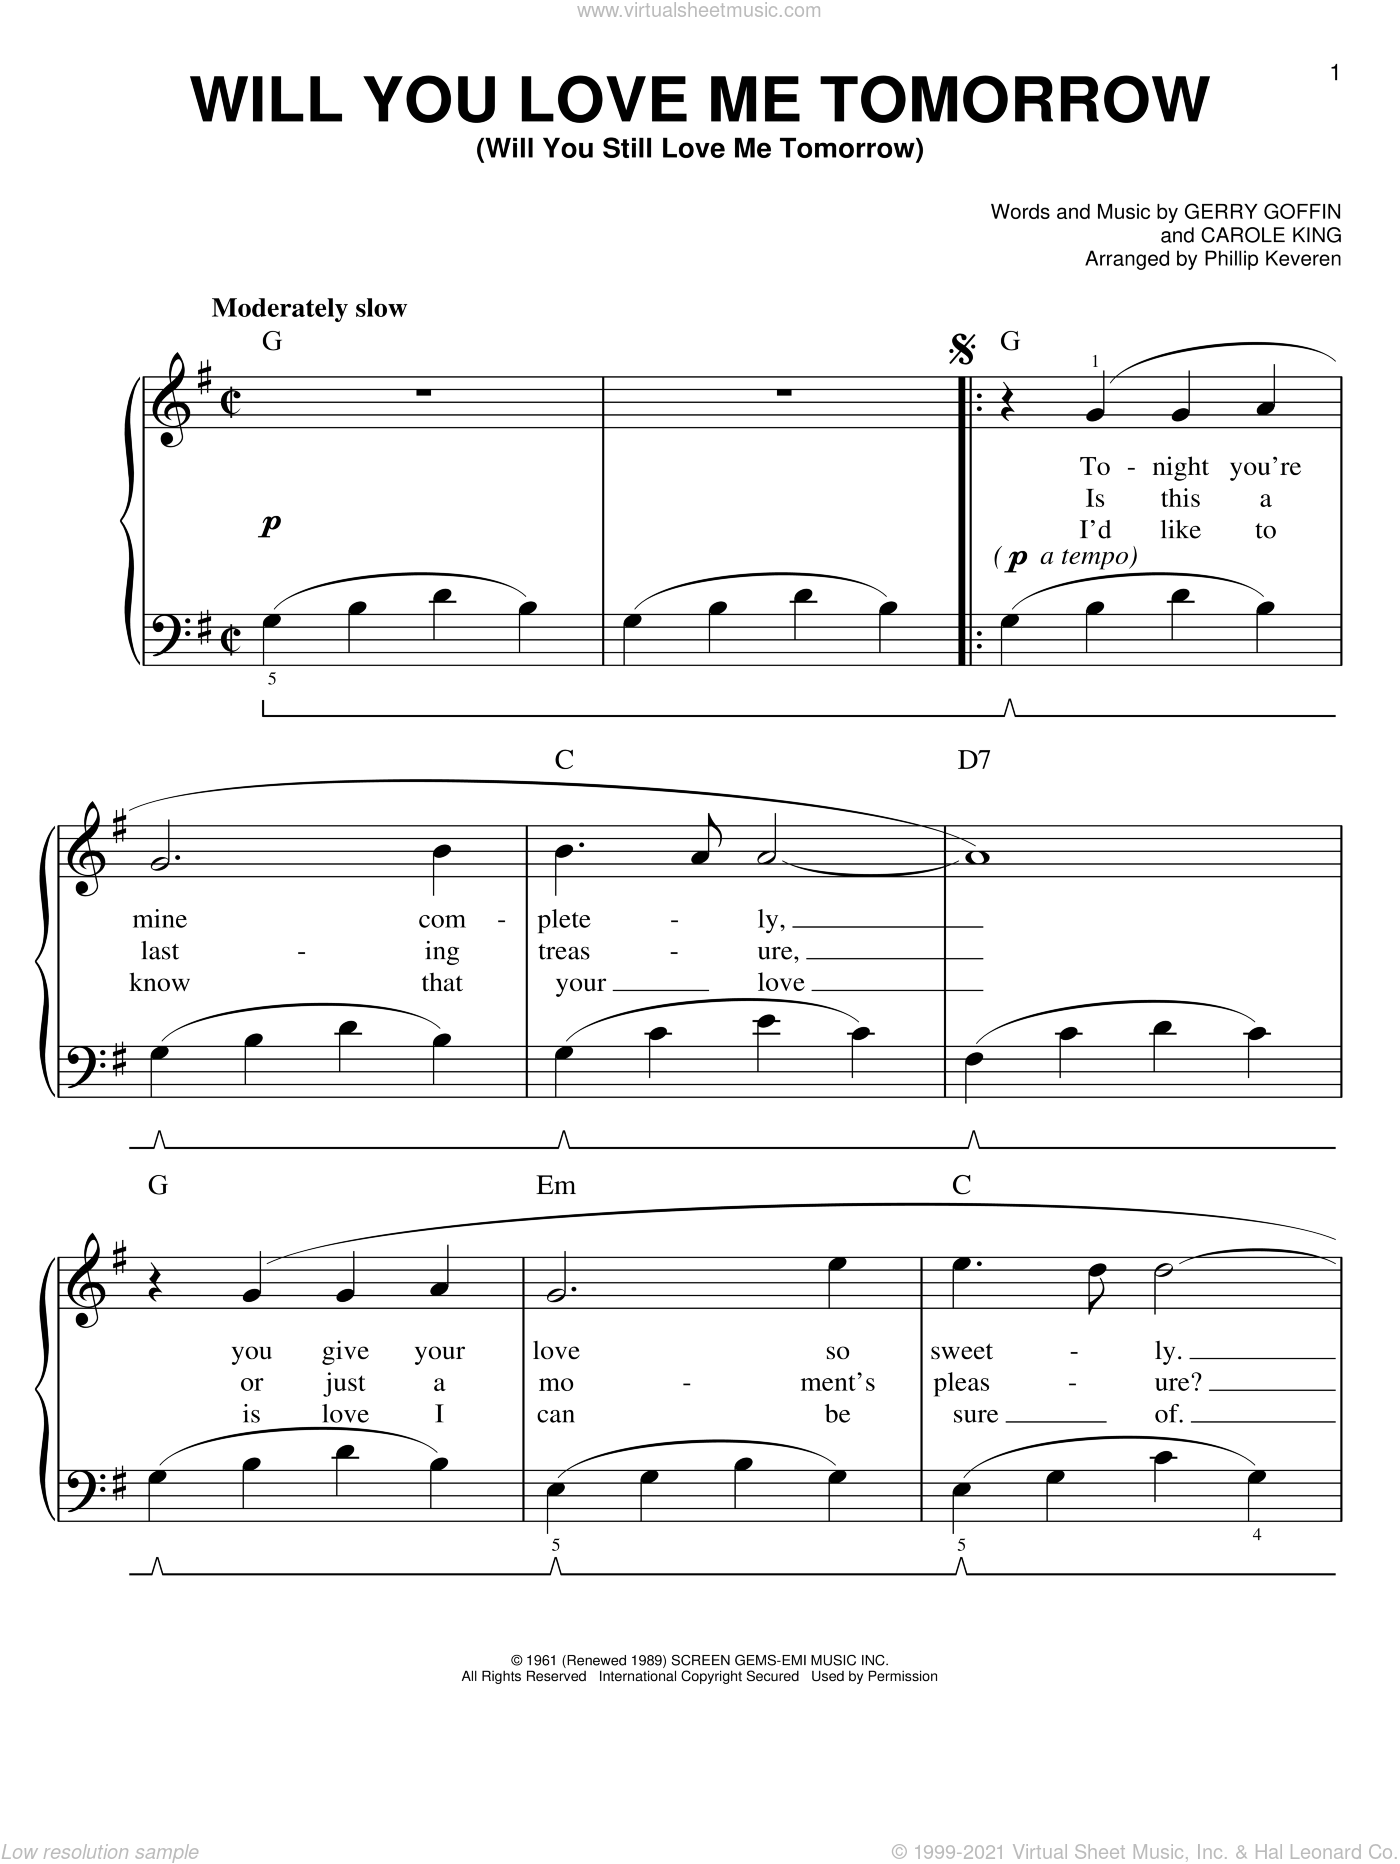 Will You Love Me Tomorrow (Will You Still Love Me Tomorrow) sheet music for piano solo by The Shirelles, Phillip Keveren, Carole King and Gerry Goffin, easy. Score Image Preview.